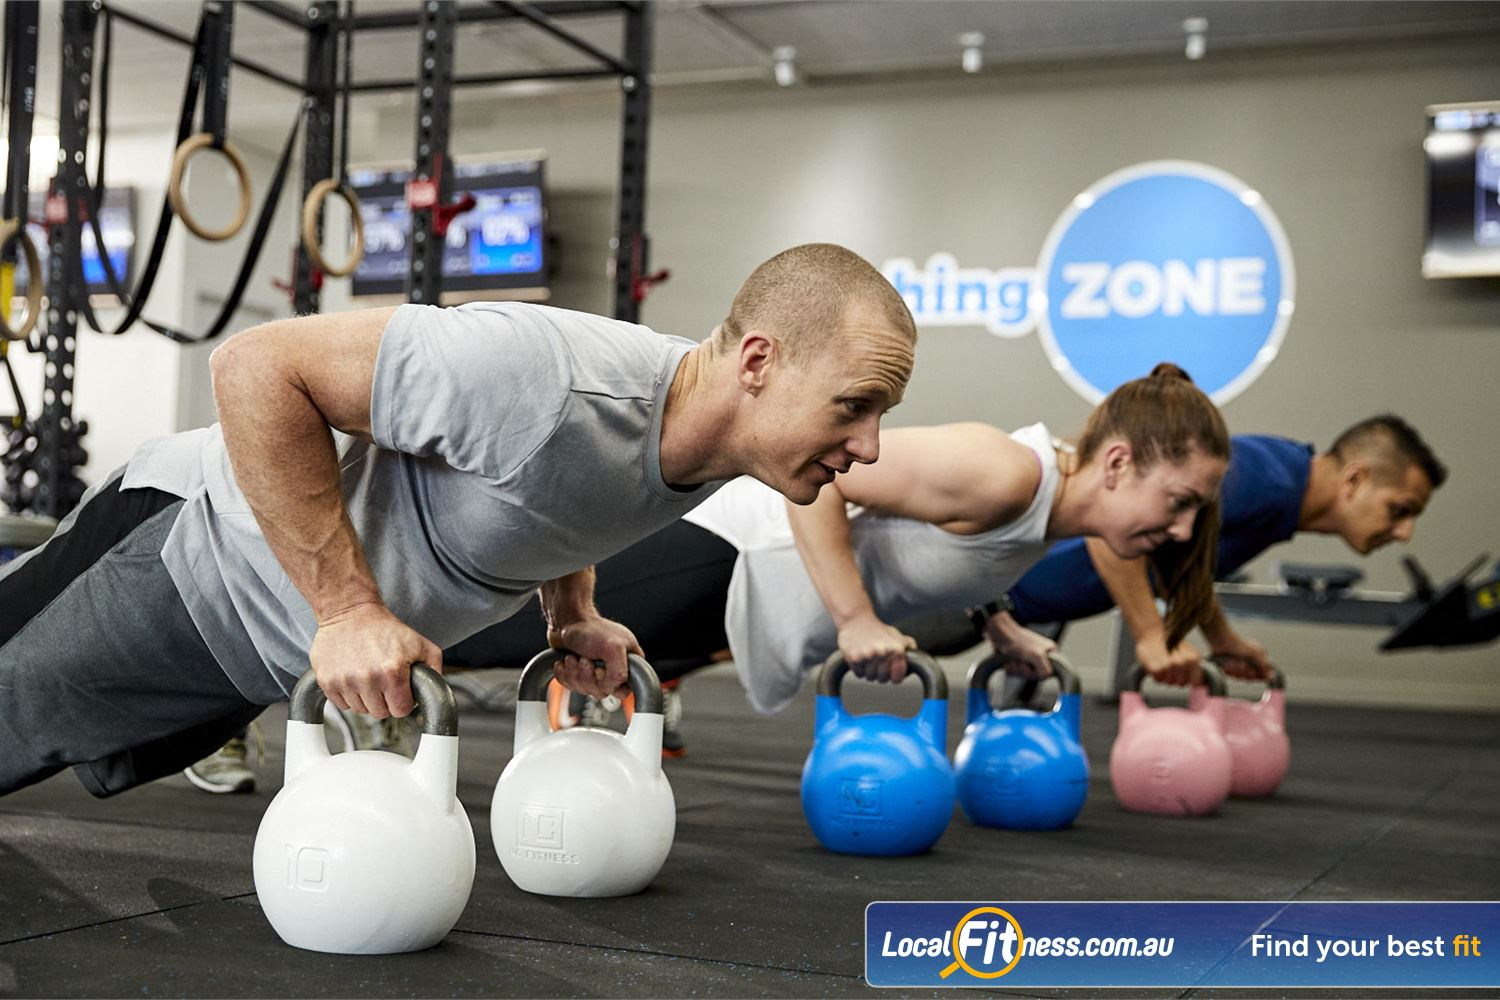 Coaching Zone Ferntree Gully Coaching Zone provides group personal training in Ferntree Gully.